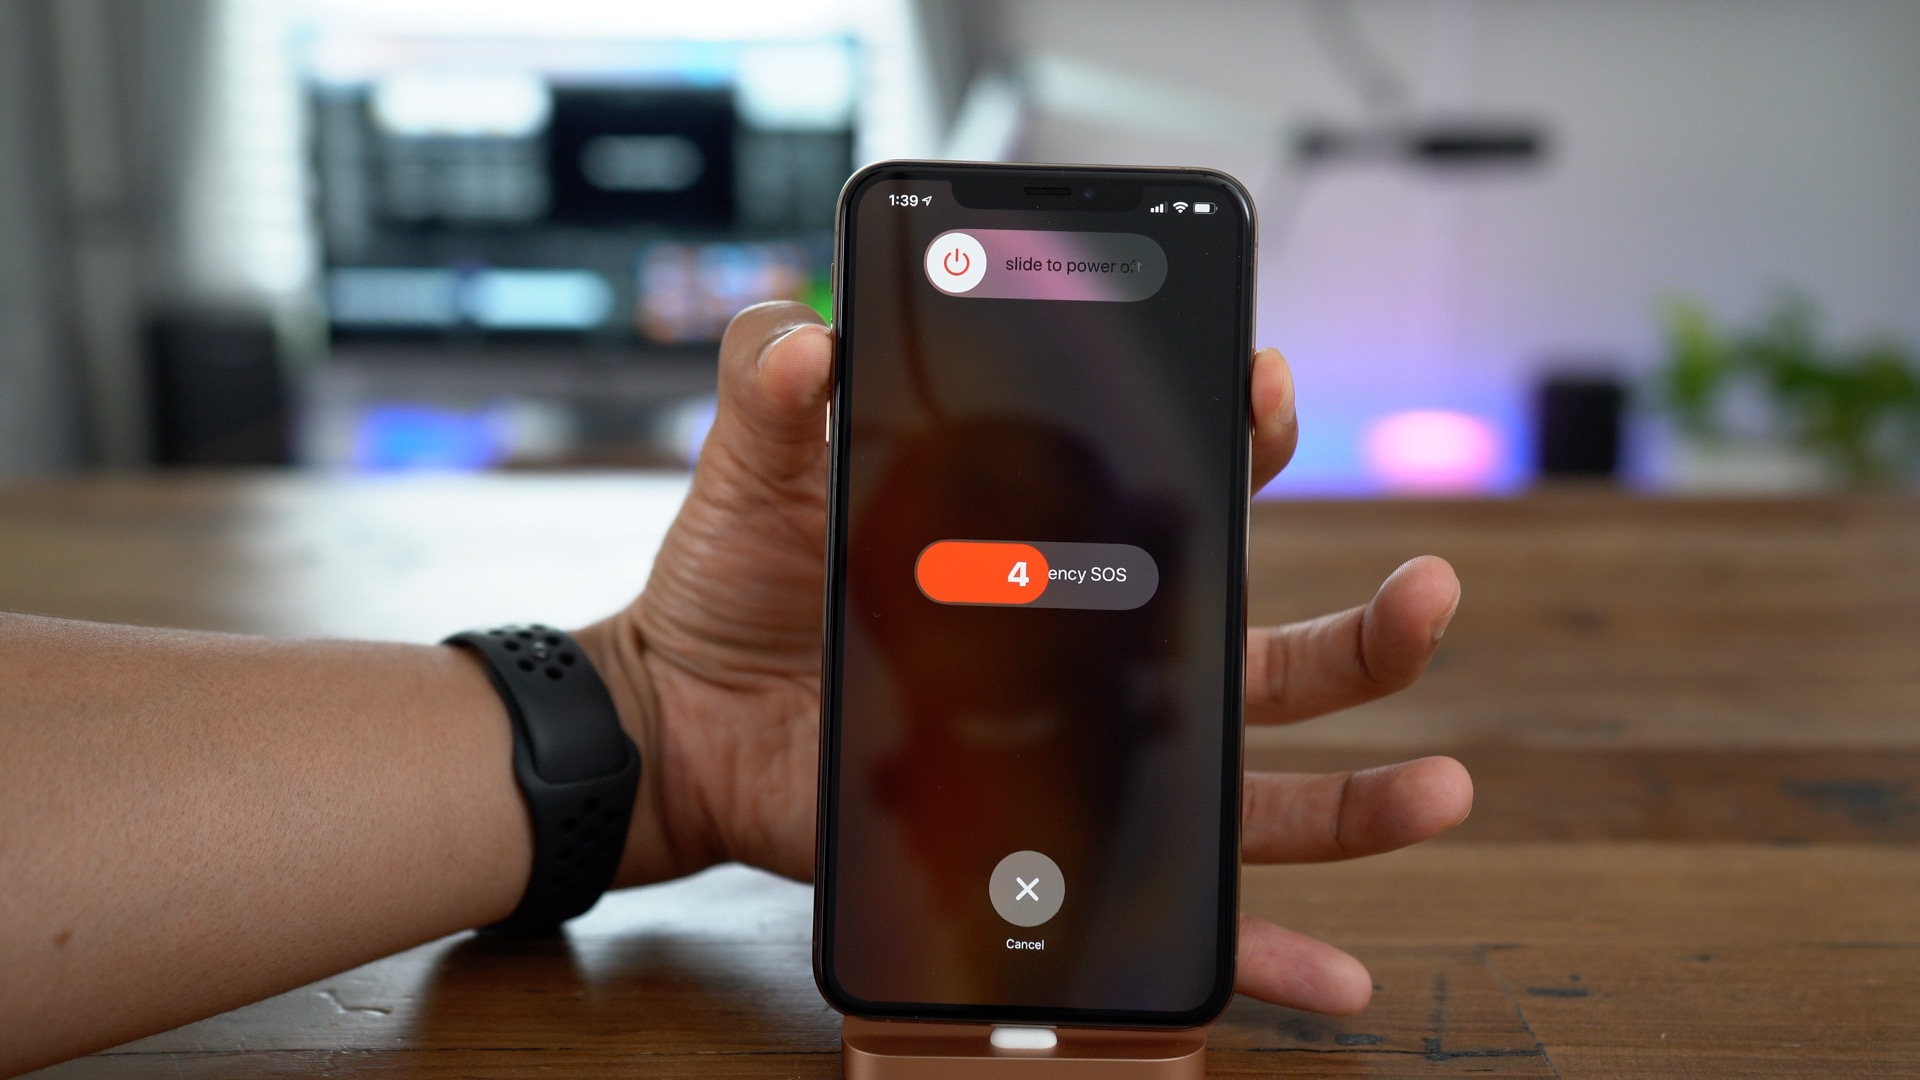 How to force reboot iphone xs